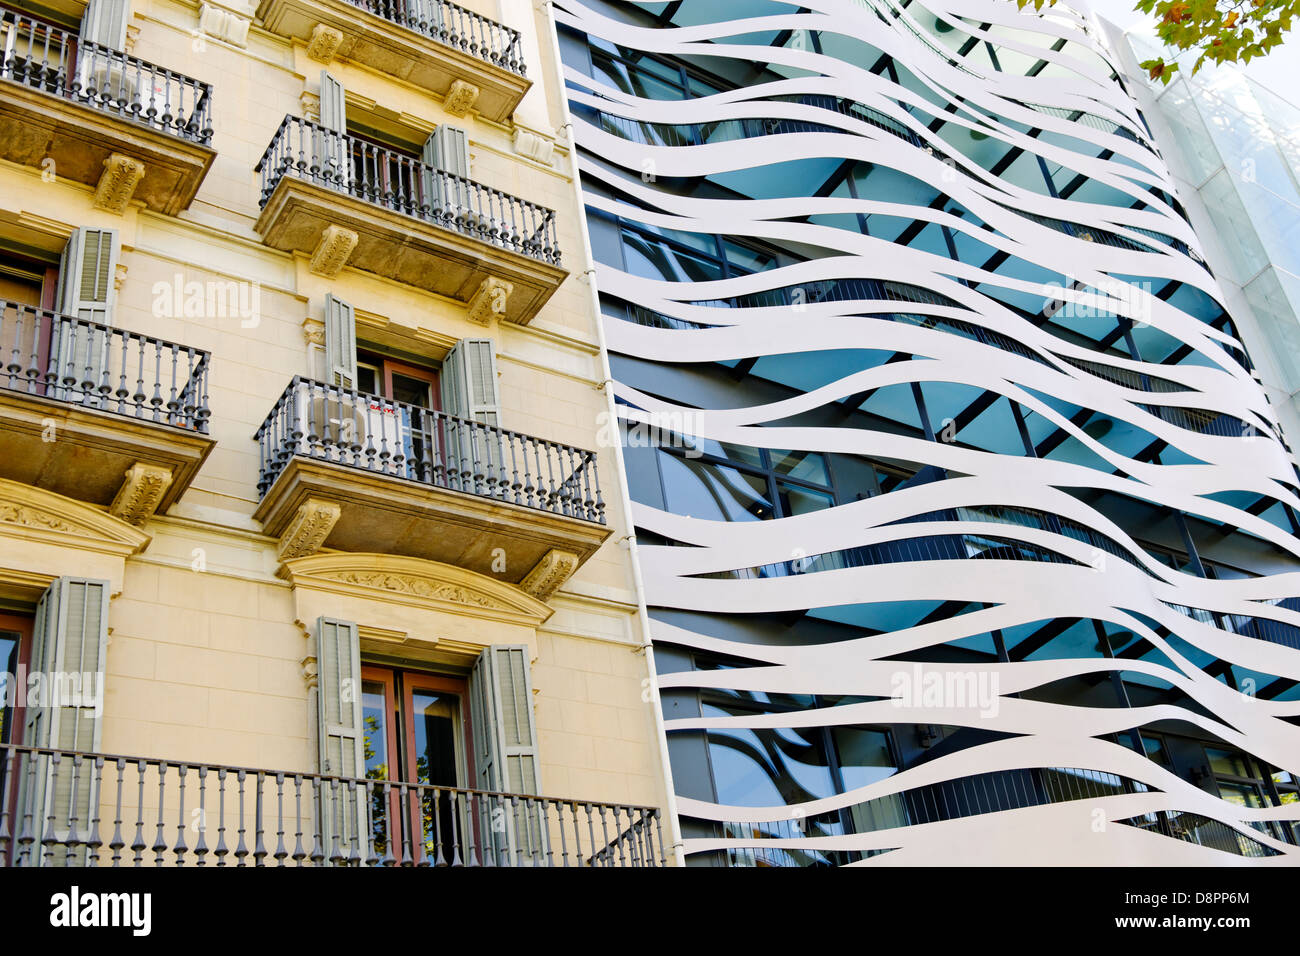 Modern Architecture Next To Classical Architecture, Facade, Barcelona, Spain